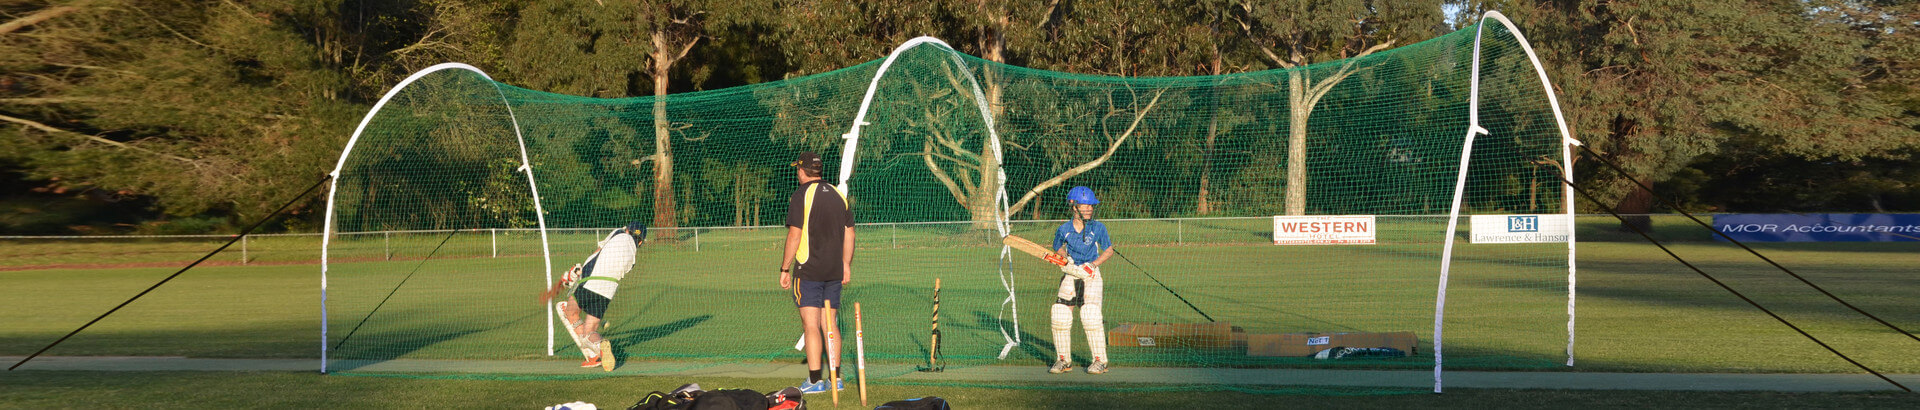 Cricket Extender Net - Ultra Sports